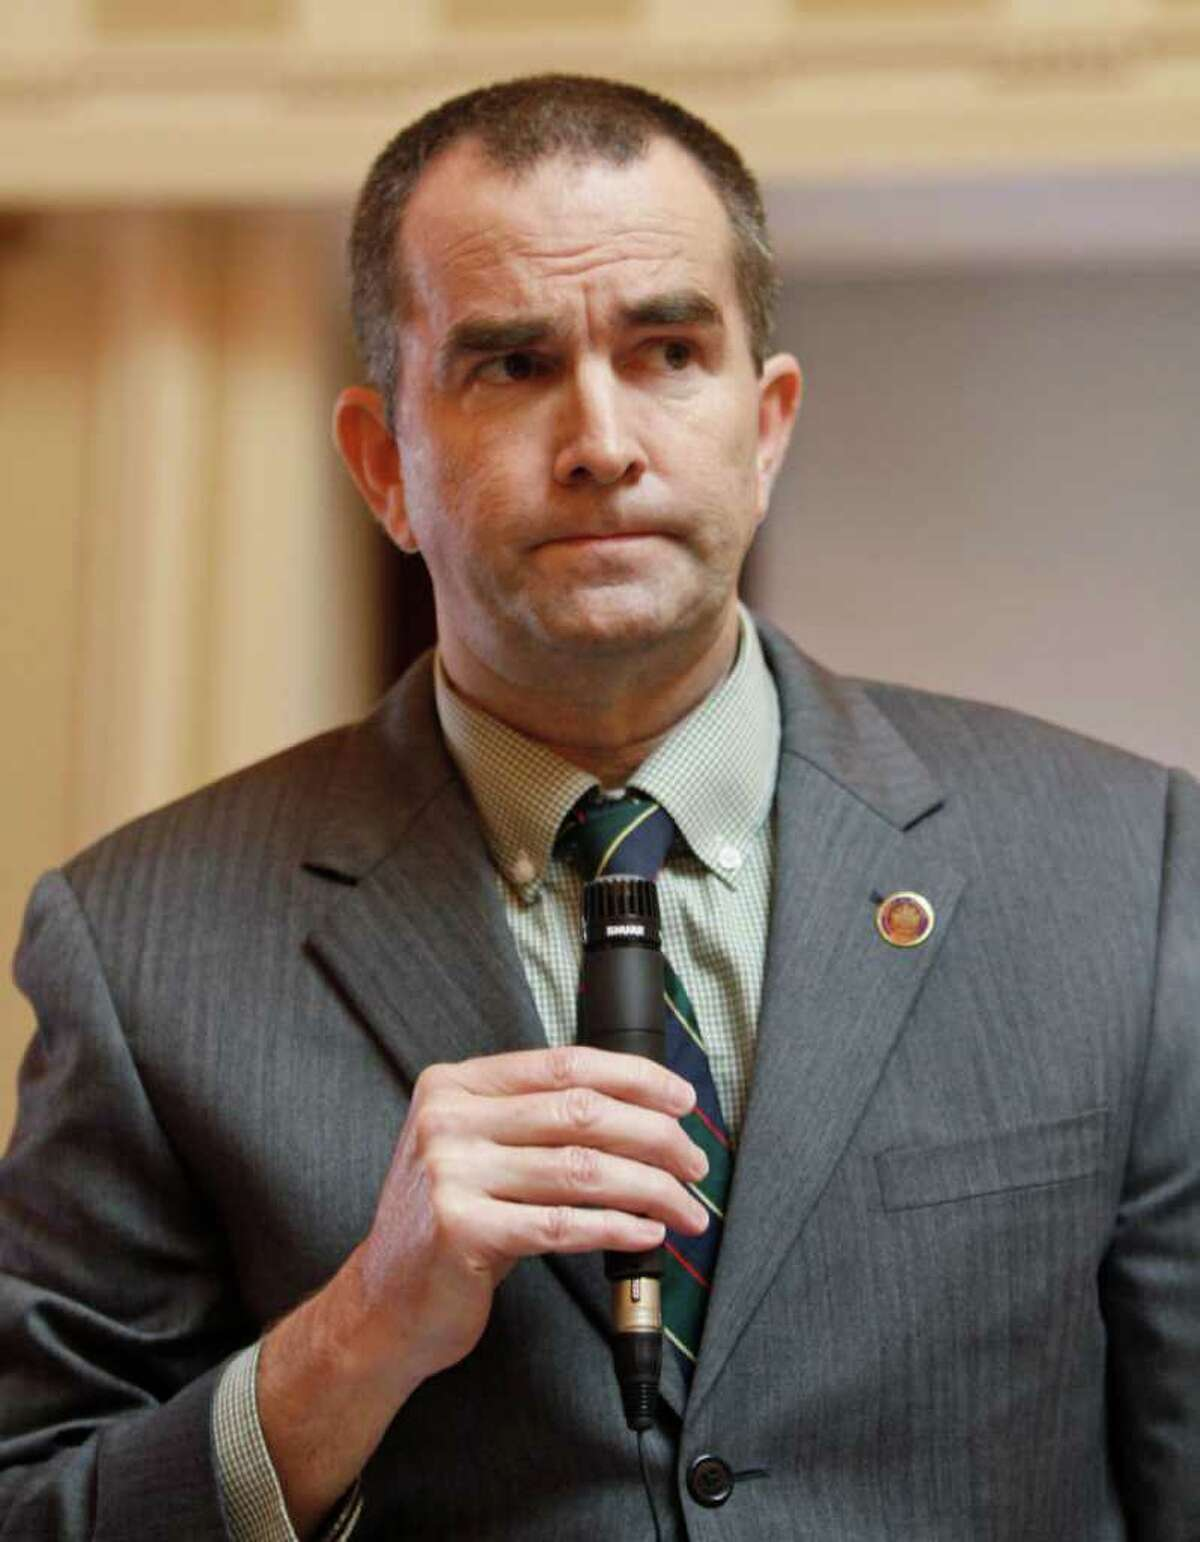 State Sen. Ralph Northam, D-Norfolk, the senate's only doctor, grimaces as he speaks during debate on a bill requiring an ultrasound before an abortion on the floor of the Senate at the Capitol in Richmond, Va., Tuesday, Feb. 28, 2012. (AP Photo/Steve Helber)